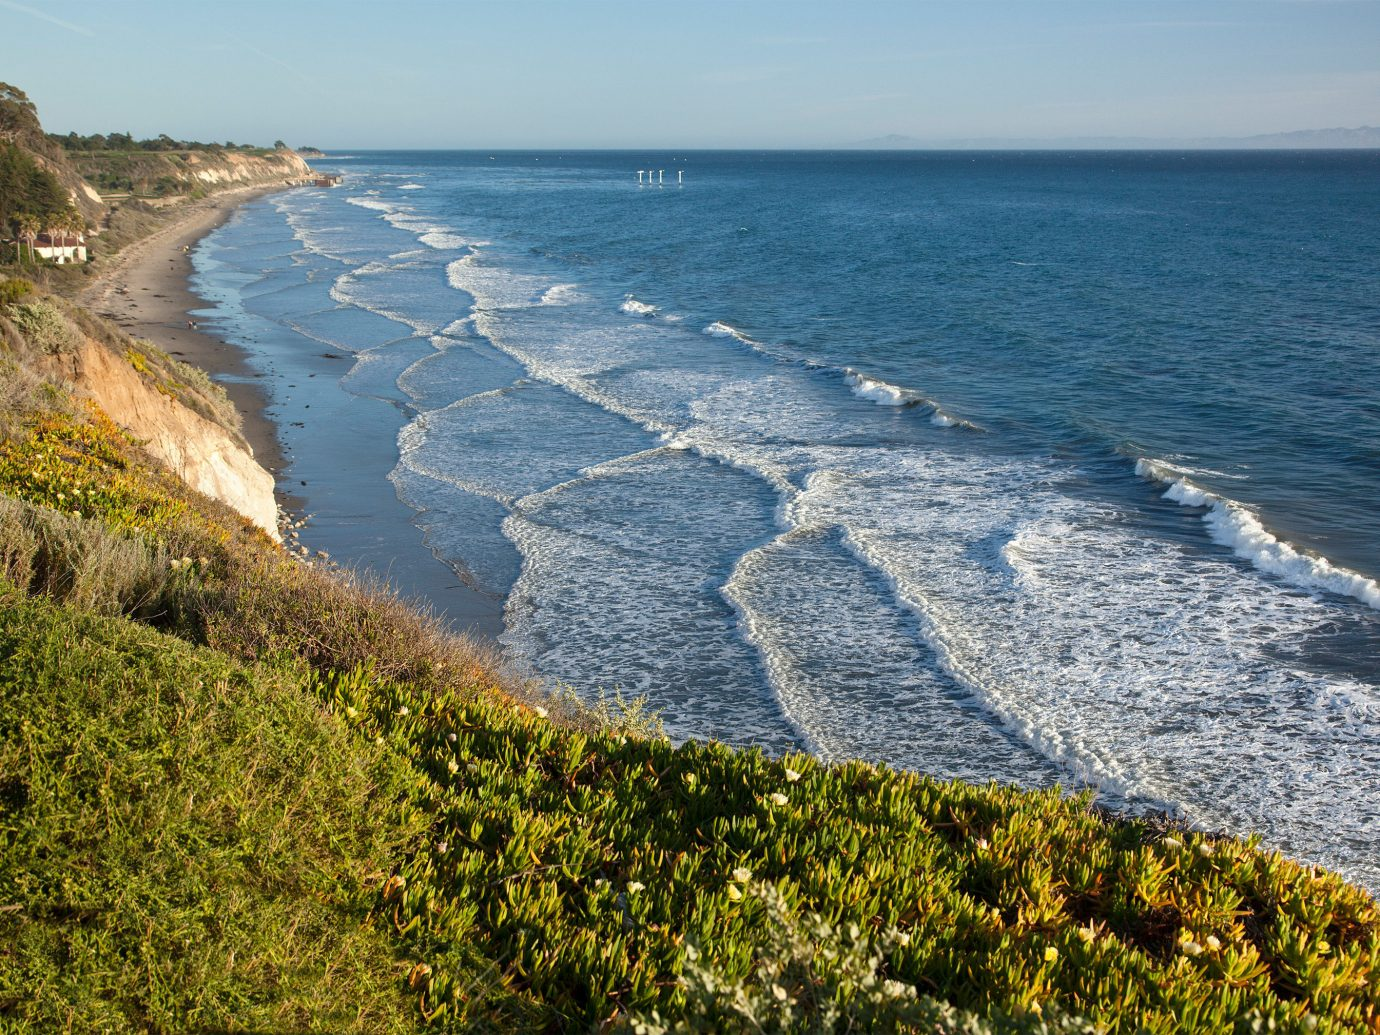 Hotels outdoor water sky grass habitat Coast Nature shore Sea landform body of water geographical feature Ocean horizon cliff Beach aerial photography vacation rock terrain cape bay wave landscape cove promontory distance